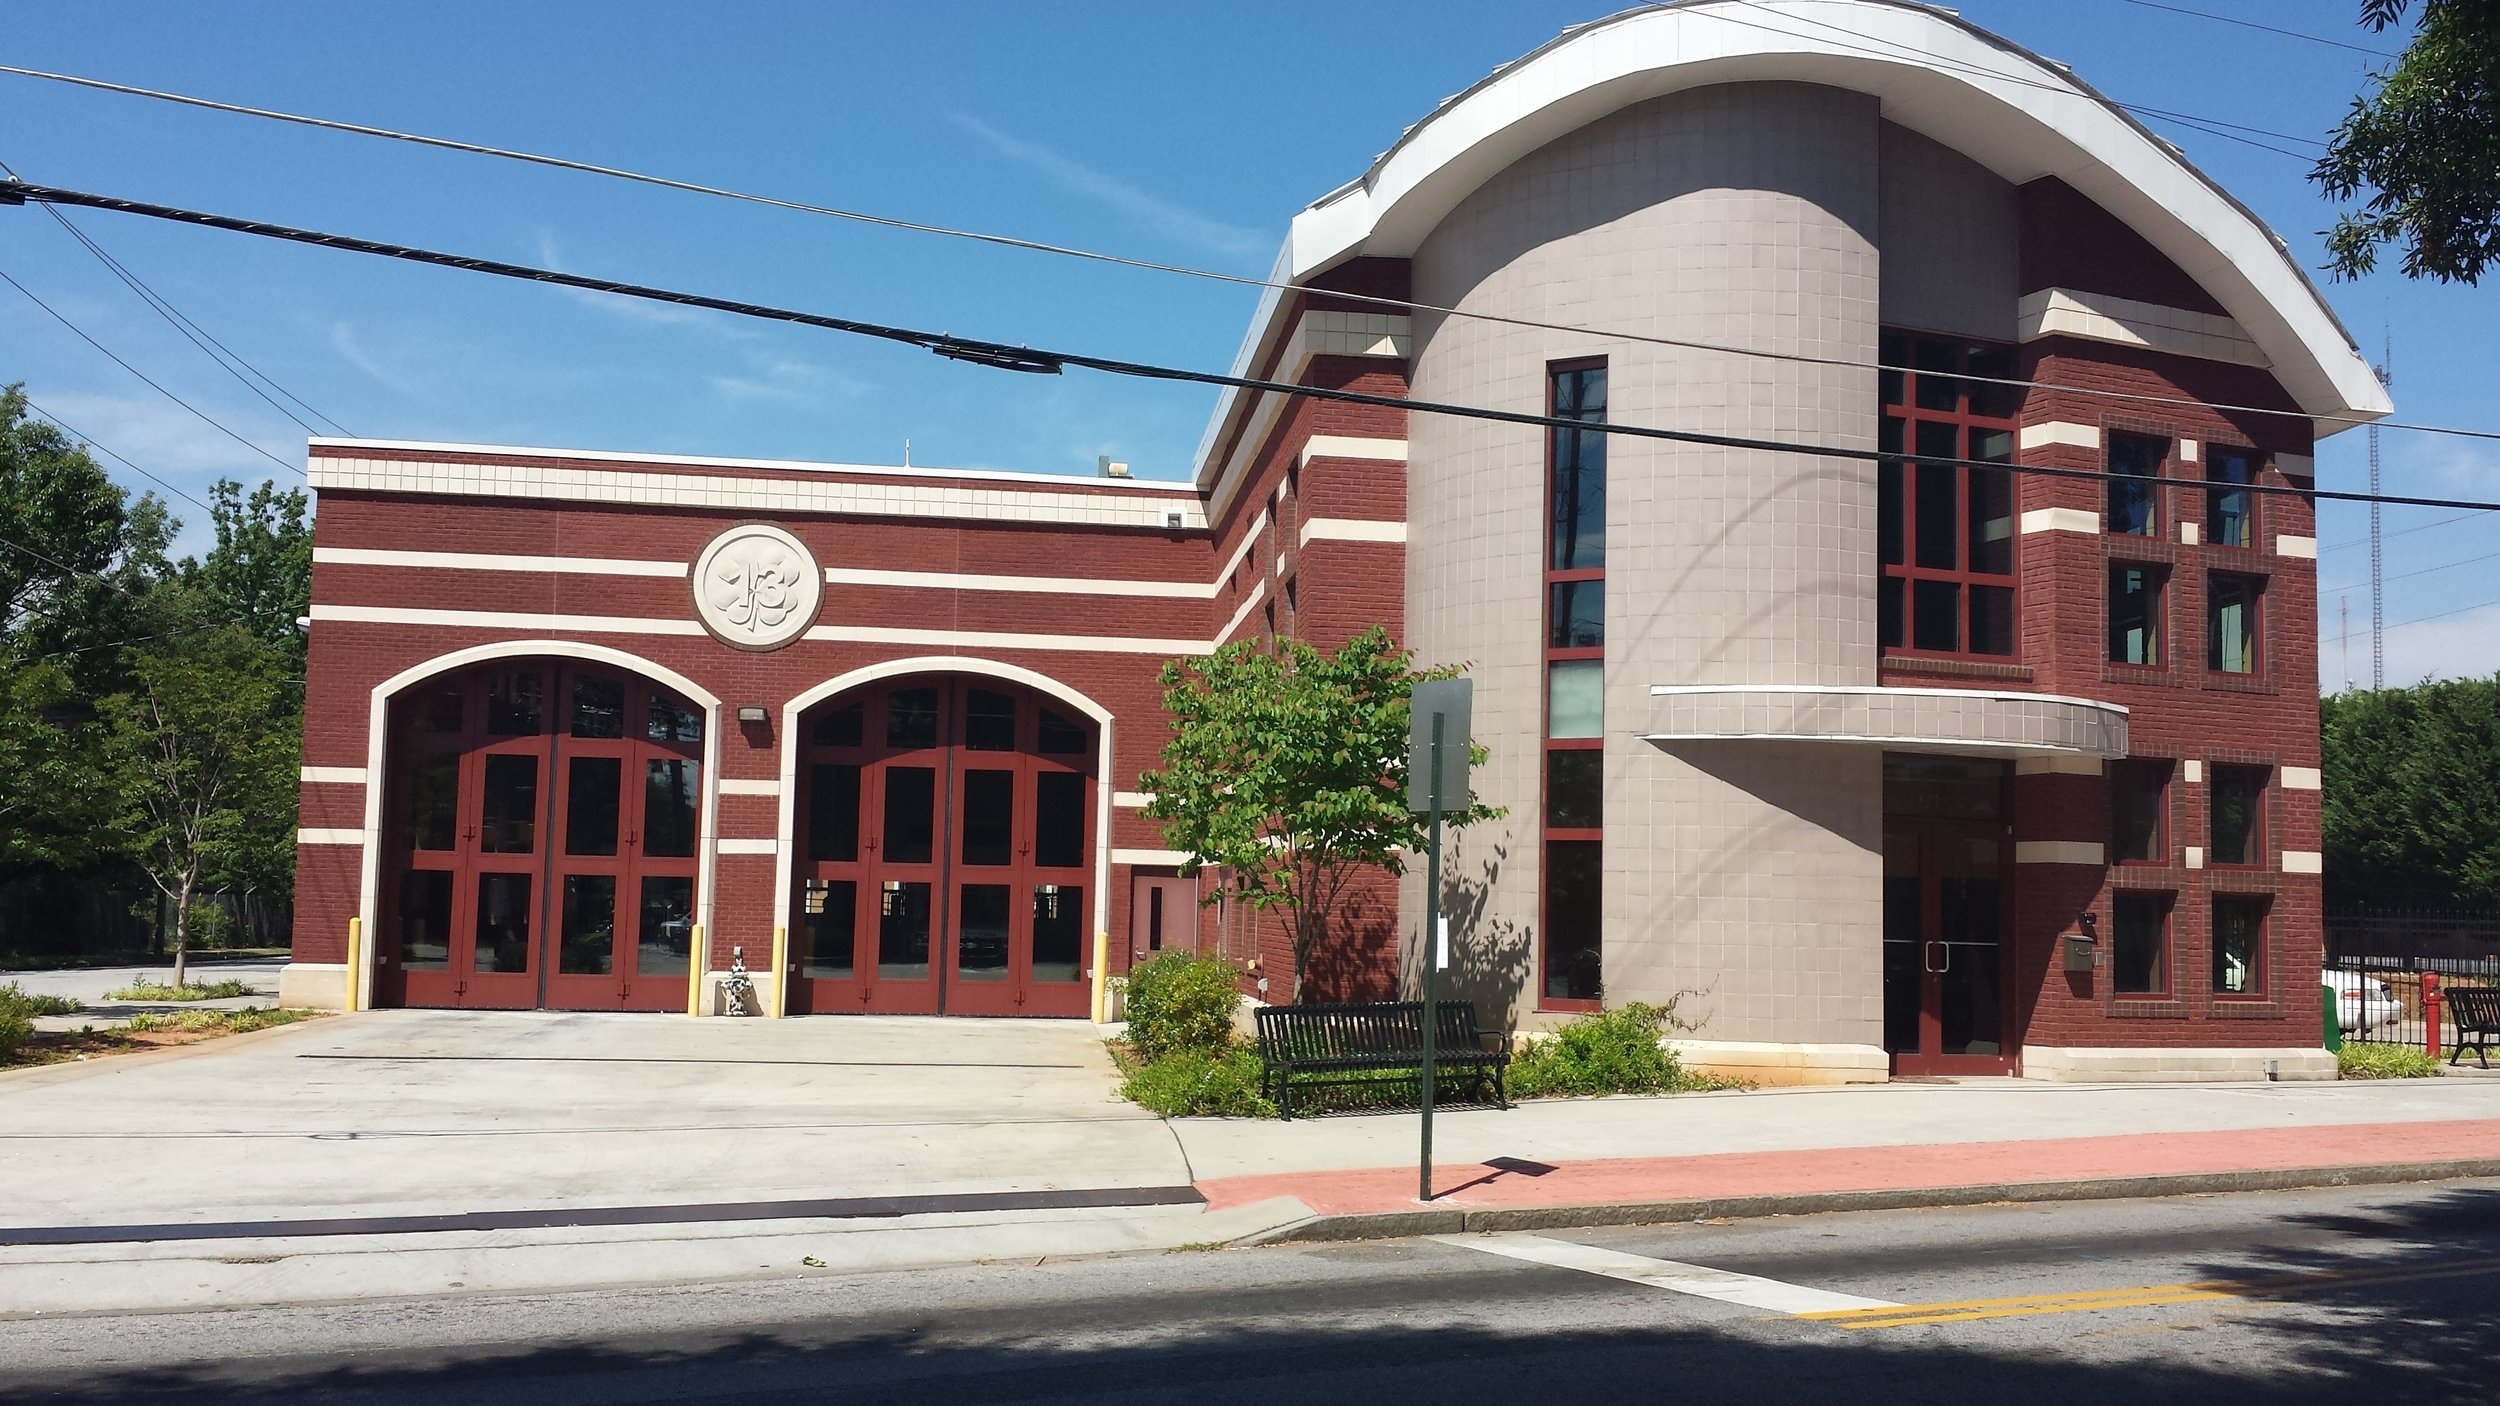 Fire Station 13 after Councilwoman Archibong ensured funding was allocated to rebuild the station.